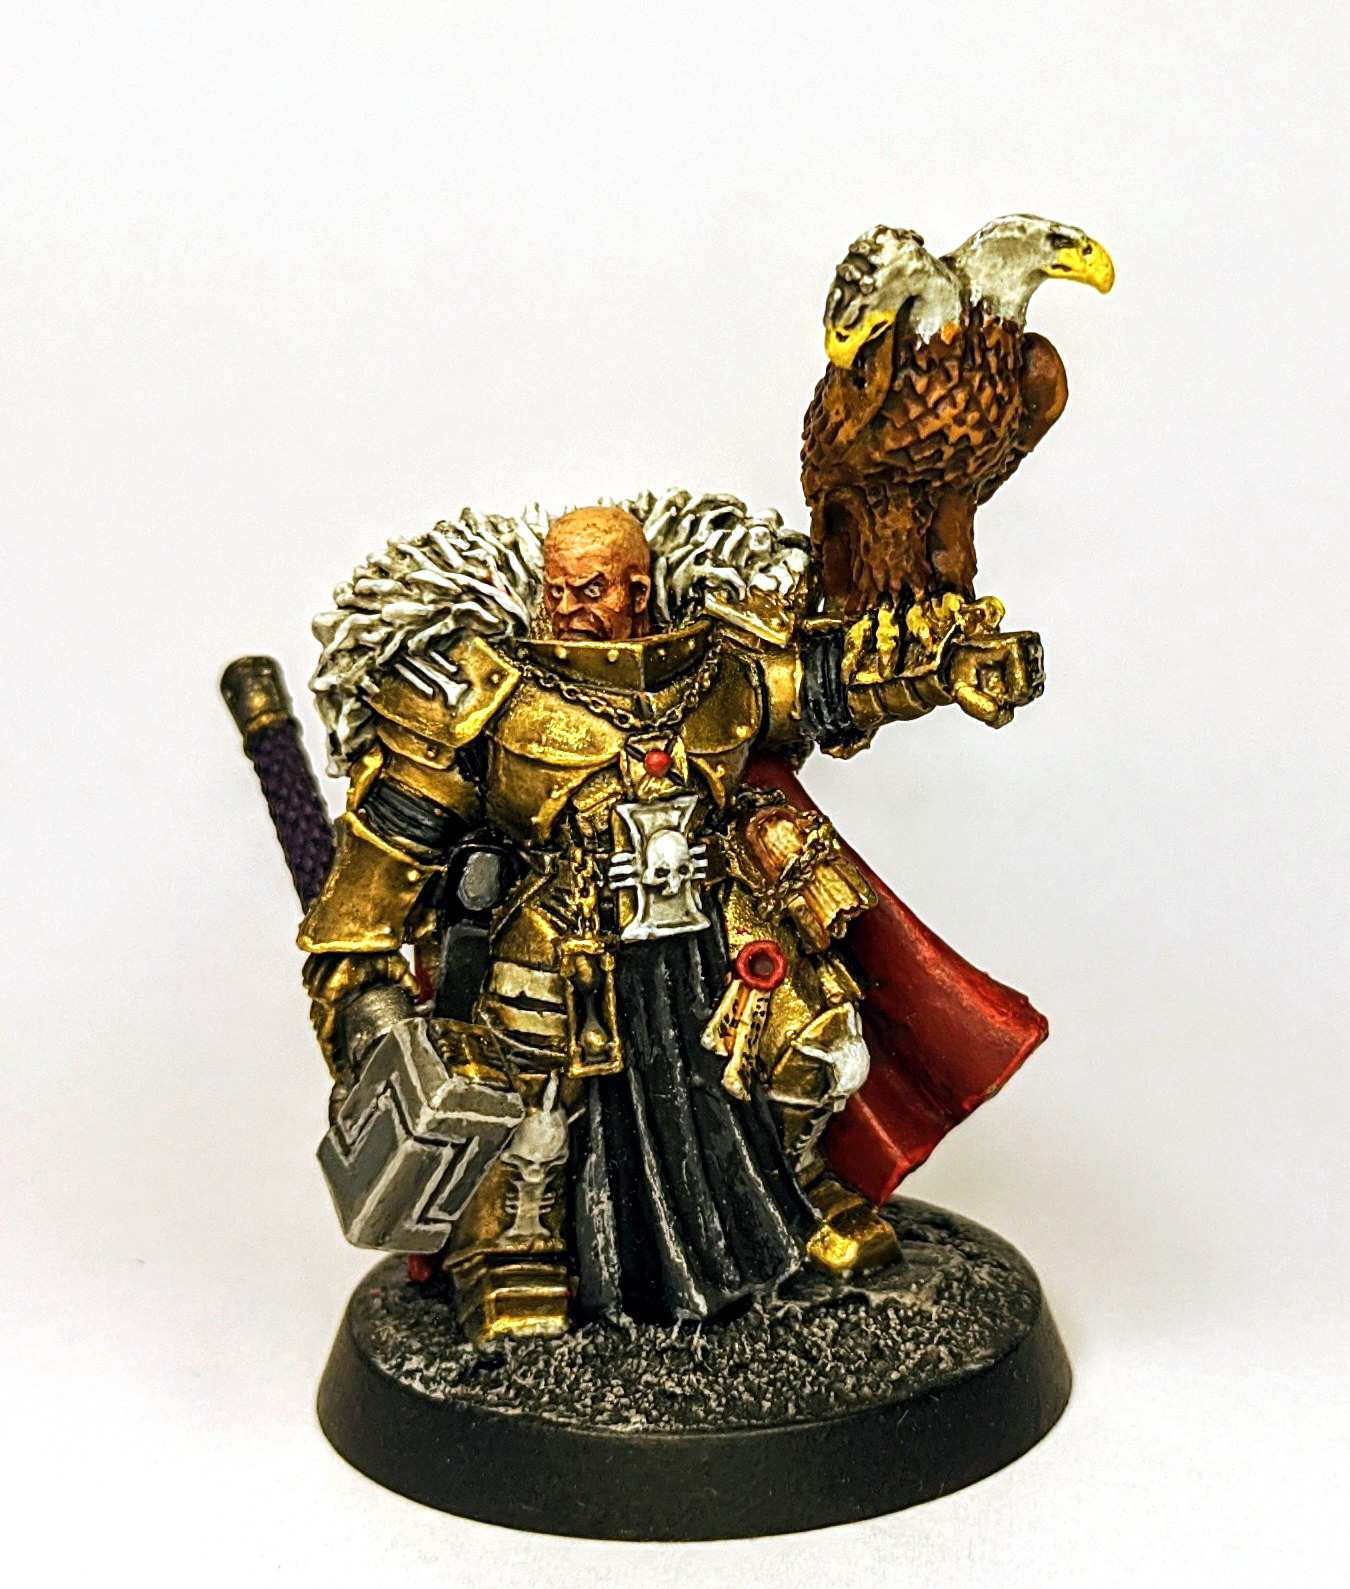 Inquisitor Corteaz